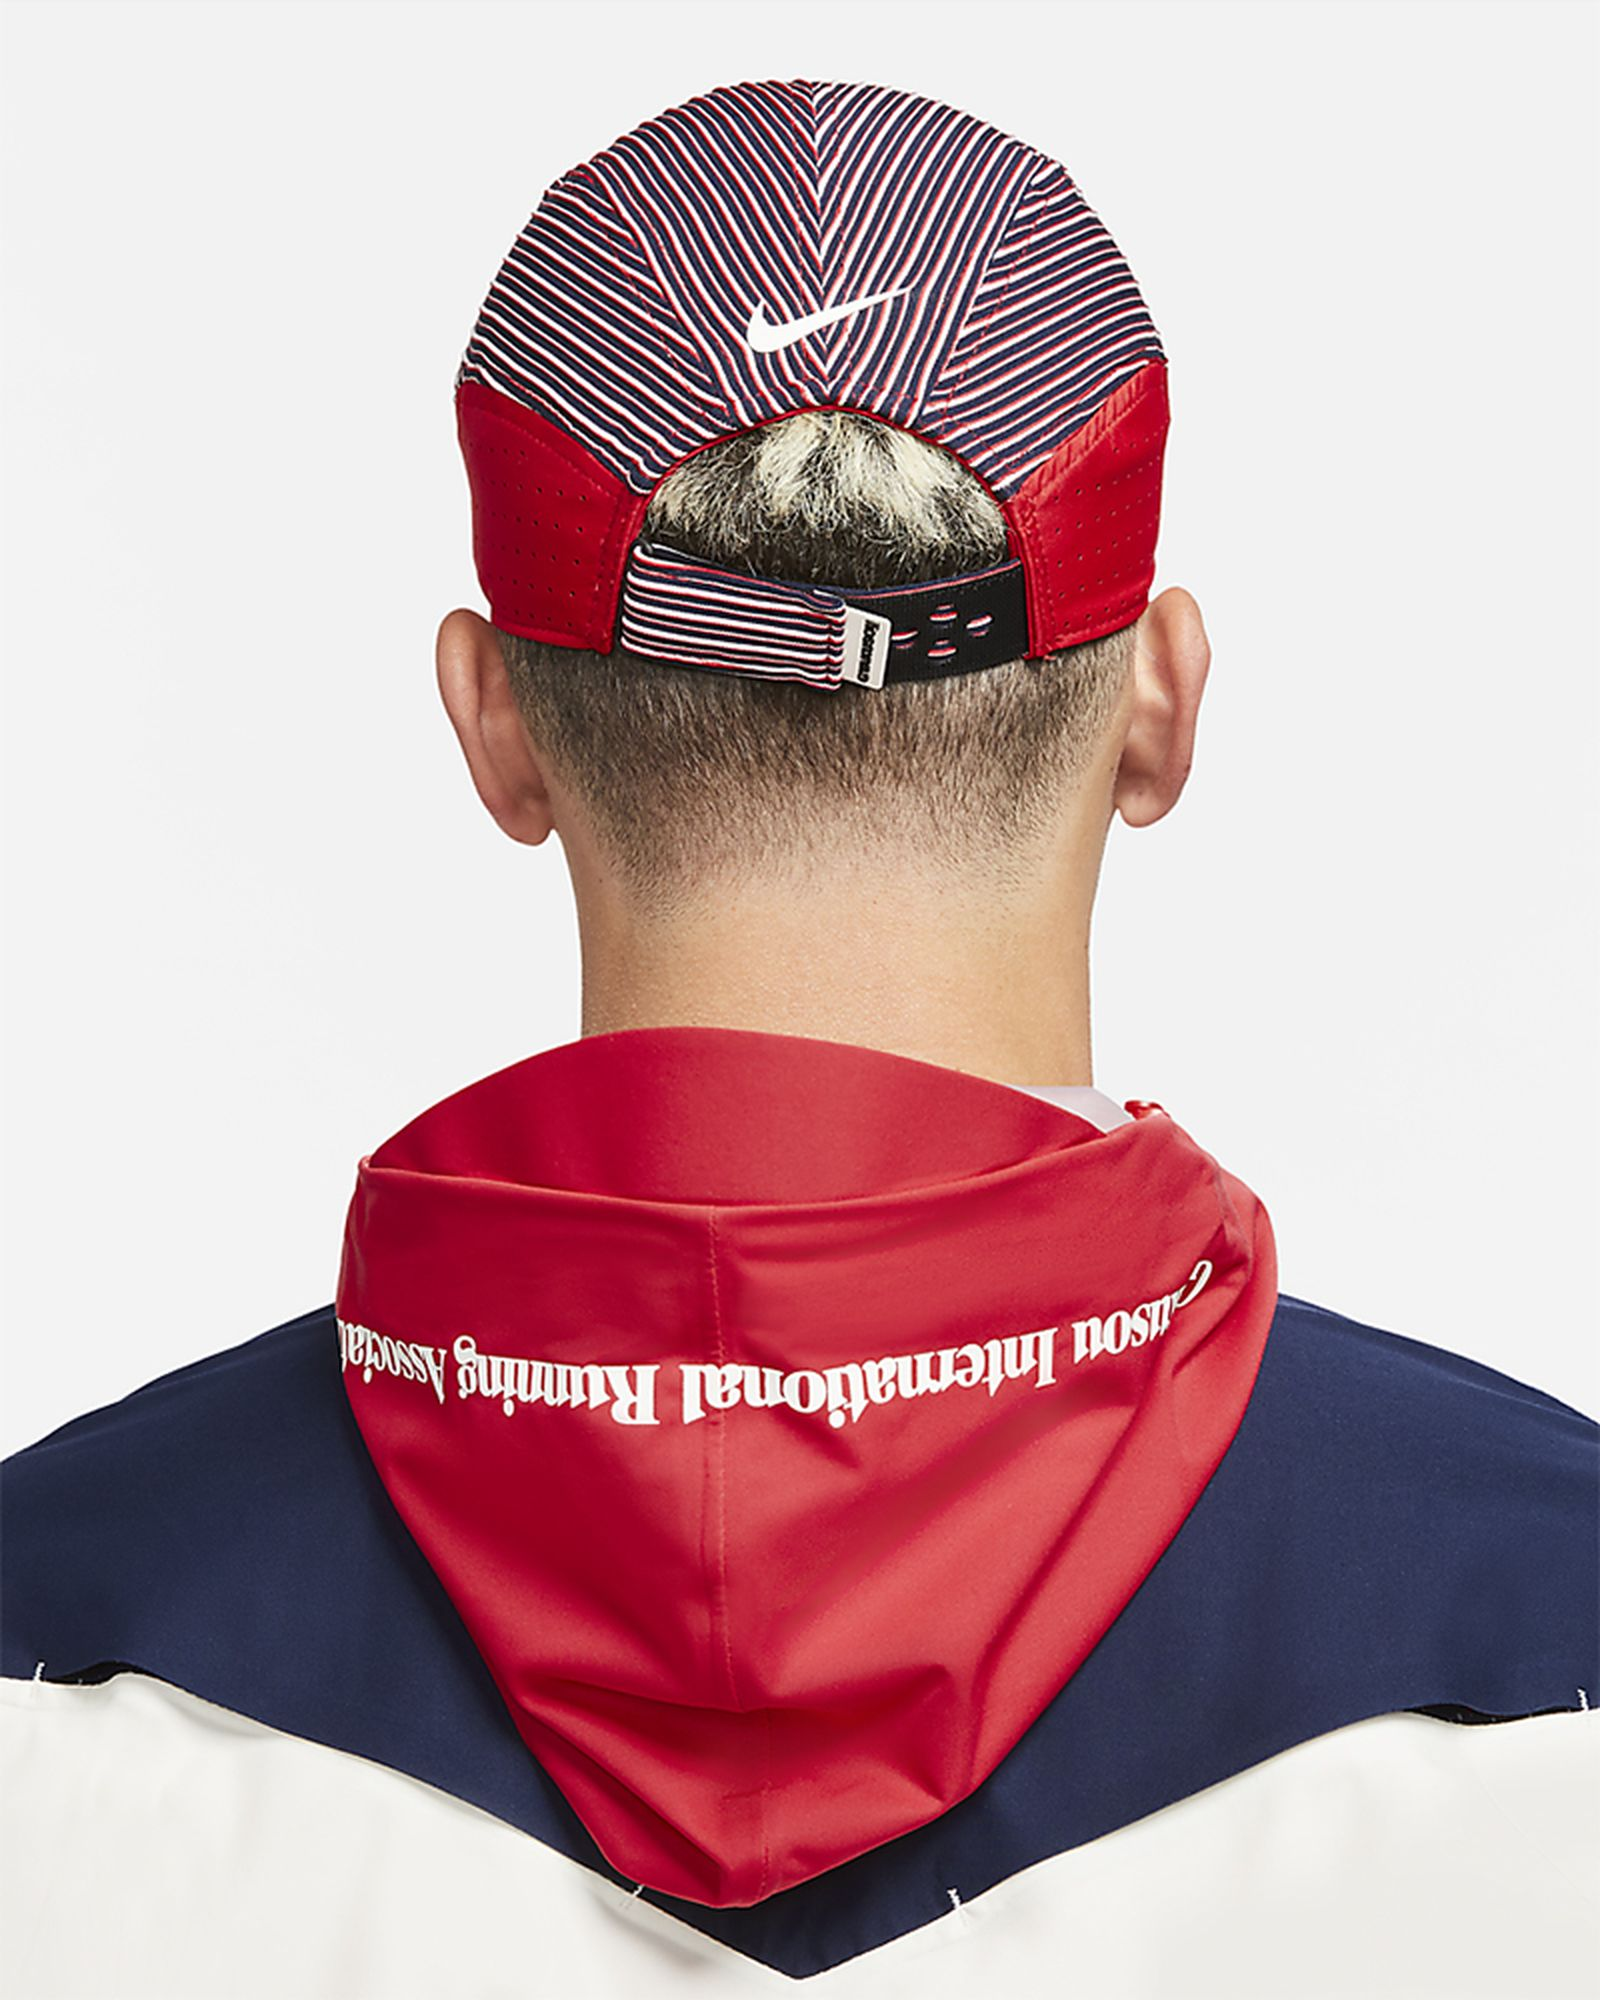 undercover-nike-zoomx-vaporfly-next-2-release-date-price-18